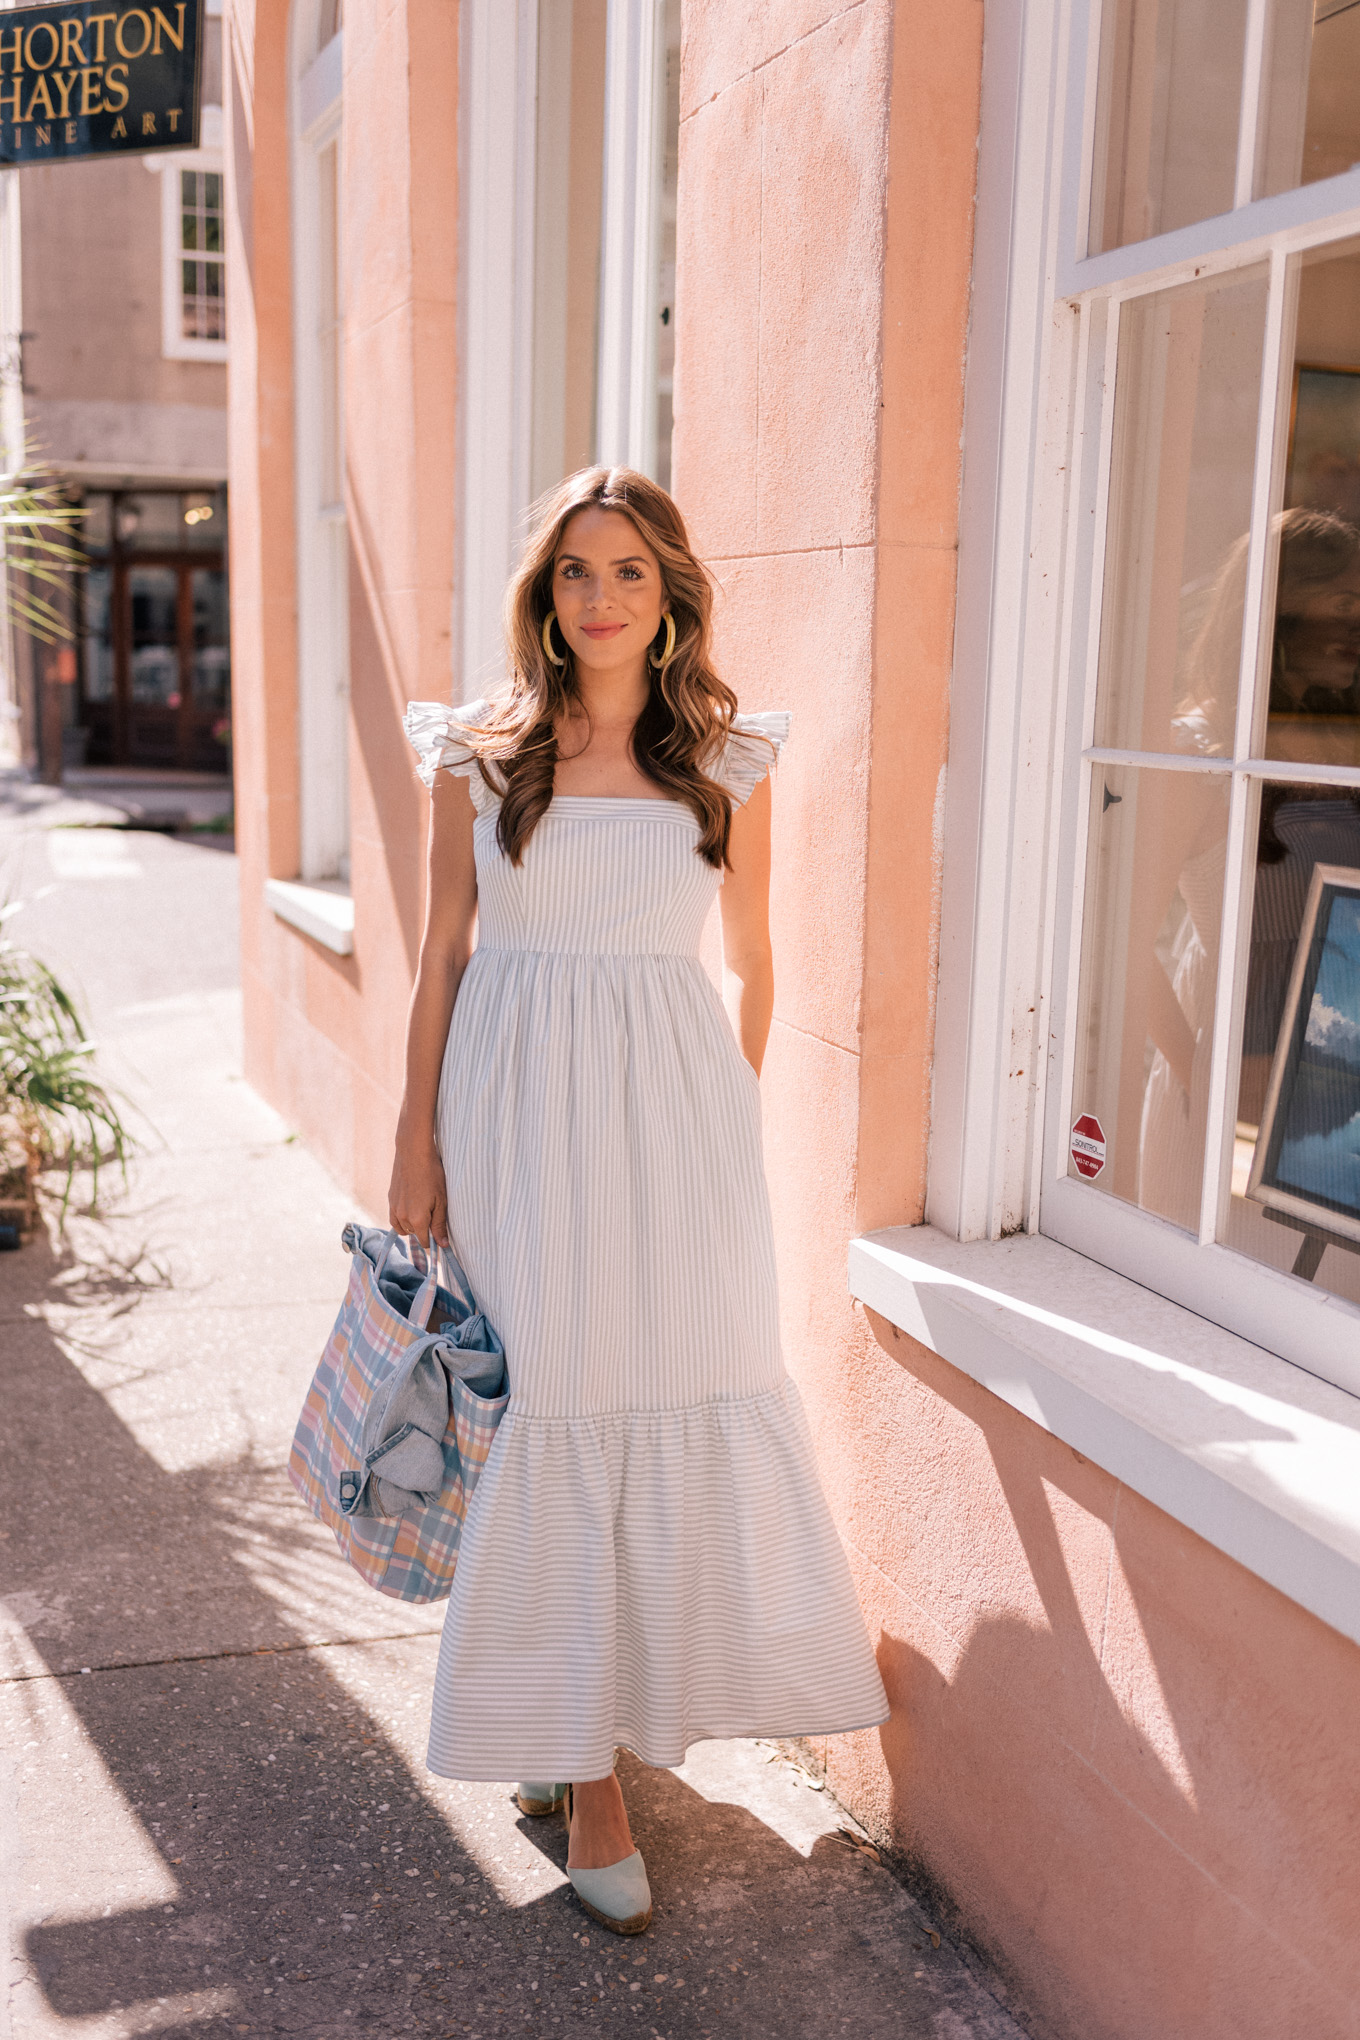 c618a93912 Maxi dresses have pretty much been the staple of my pregnancy wardrobe